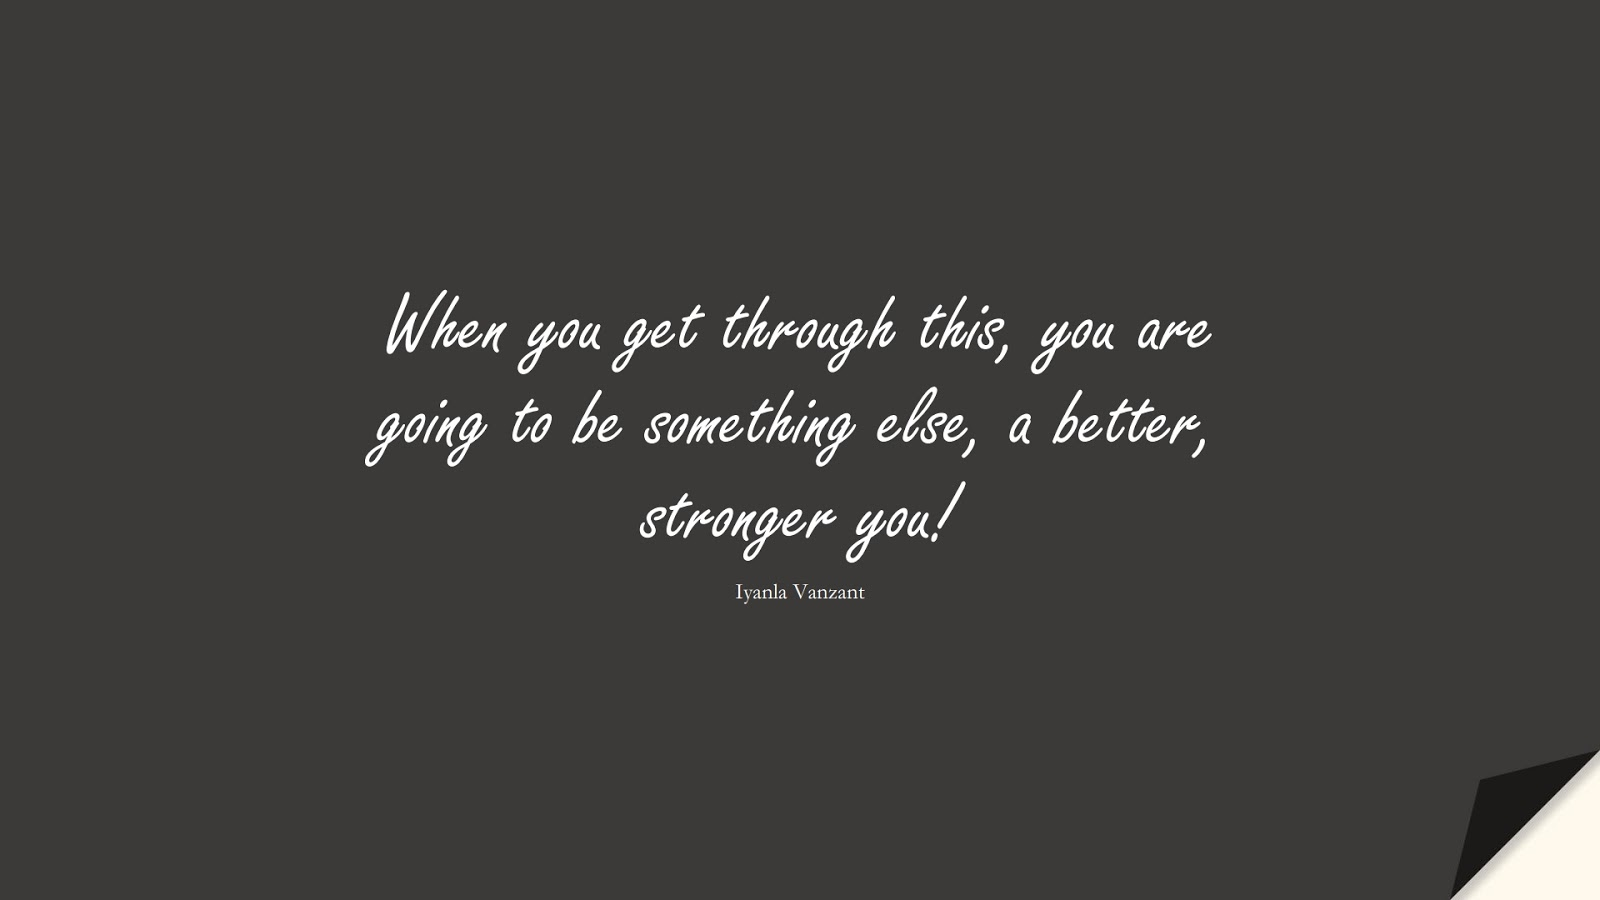 When you get through this, you are going to be something else, a better, stronger you! (Iyanla Vanzant);  #EncouragingQuotes